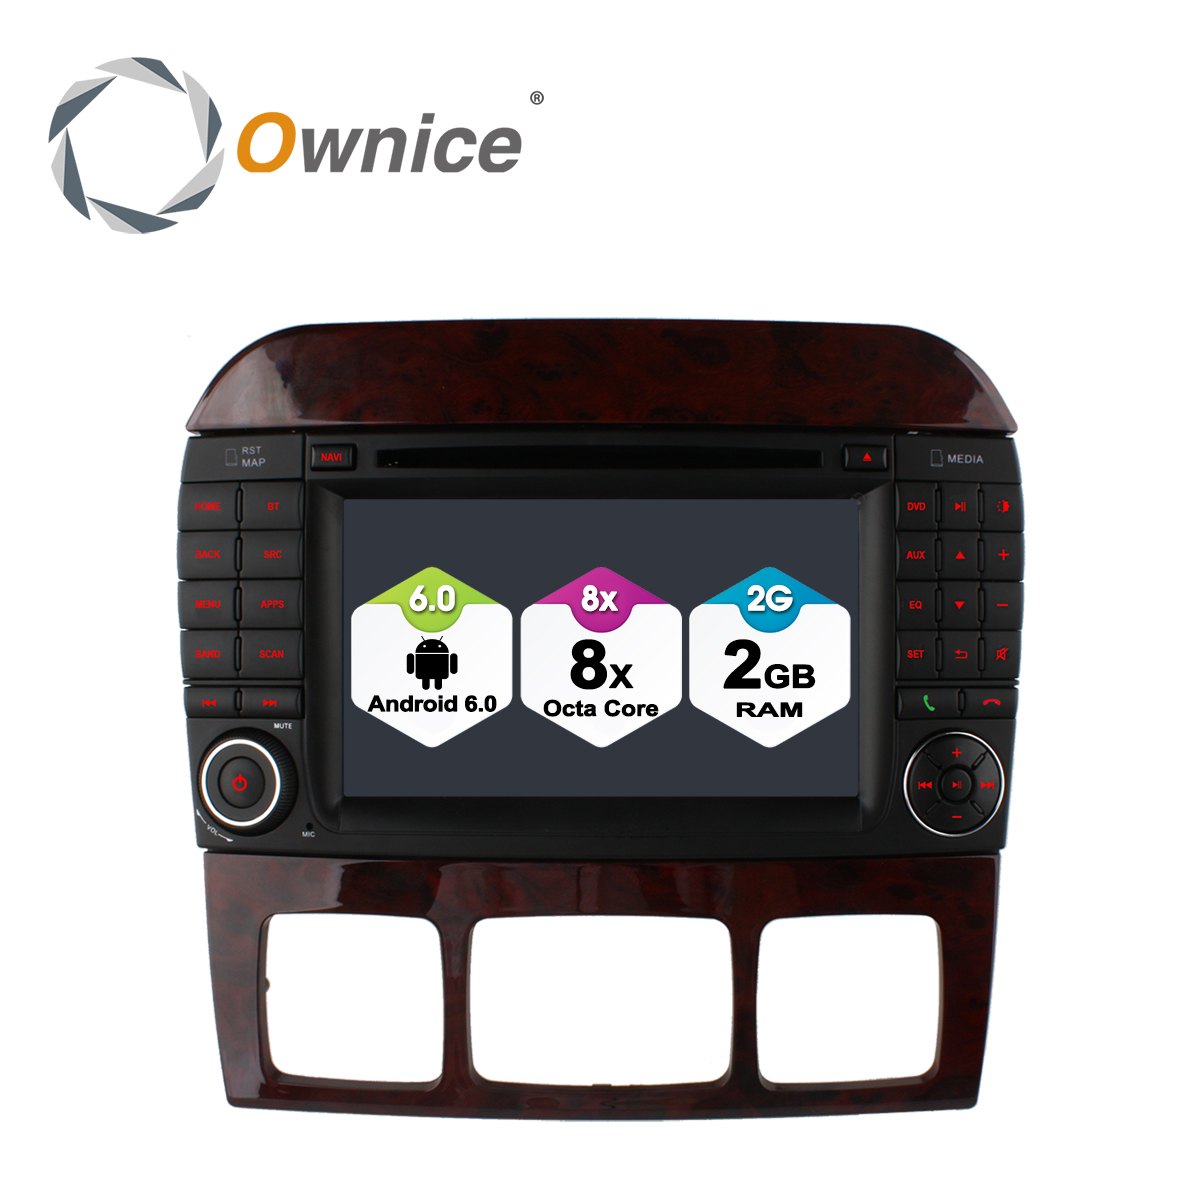 Ownice C500 Android 6.0 8 Core Car DVD Player <font><b>For</b></font> <font><b>Mercedes</b></font> S CL Class W220 W215 S550 <font><b>S600</b></font> S350 S400 S280 S320 S65 <font><b>GPS</b></font> Radio 4G image